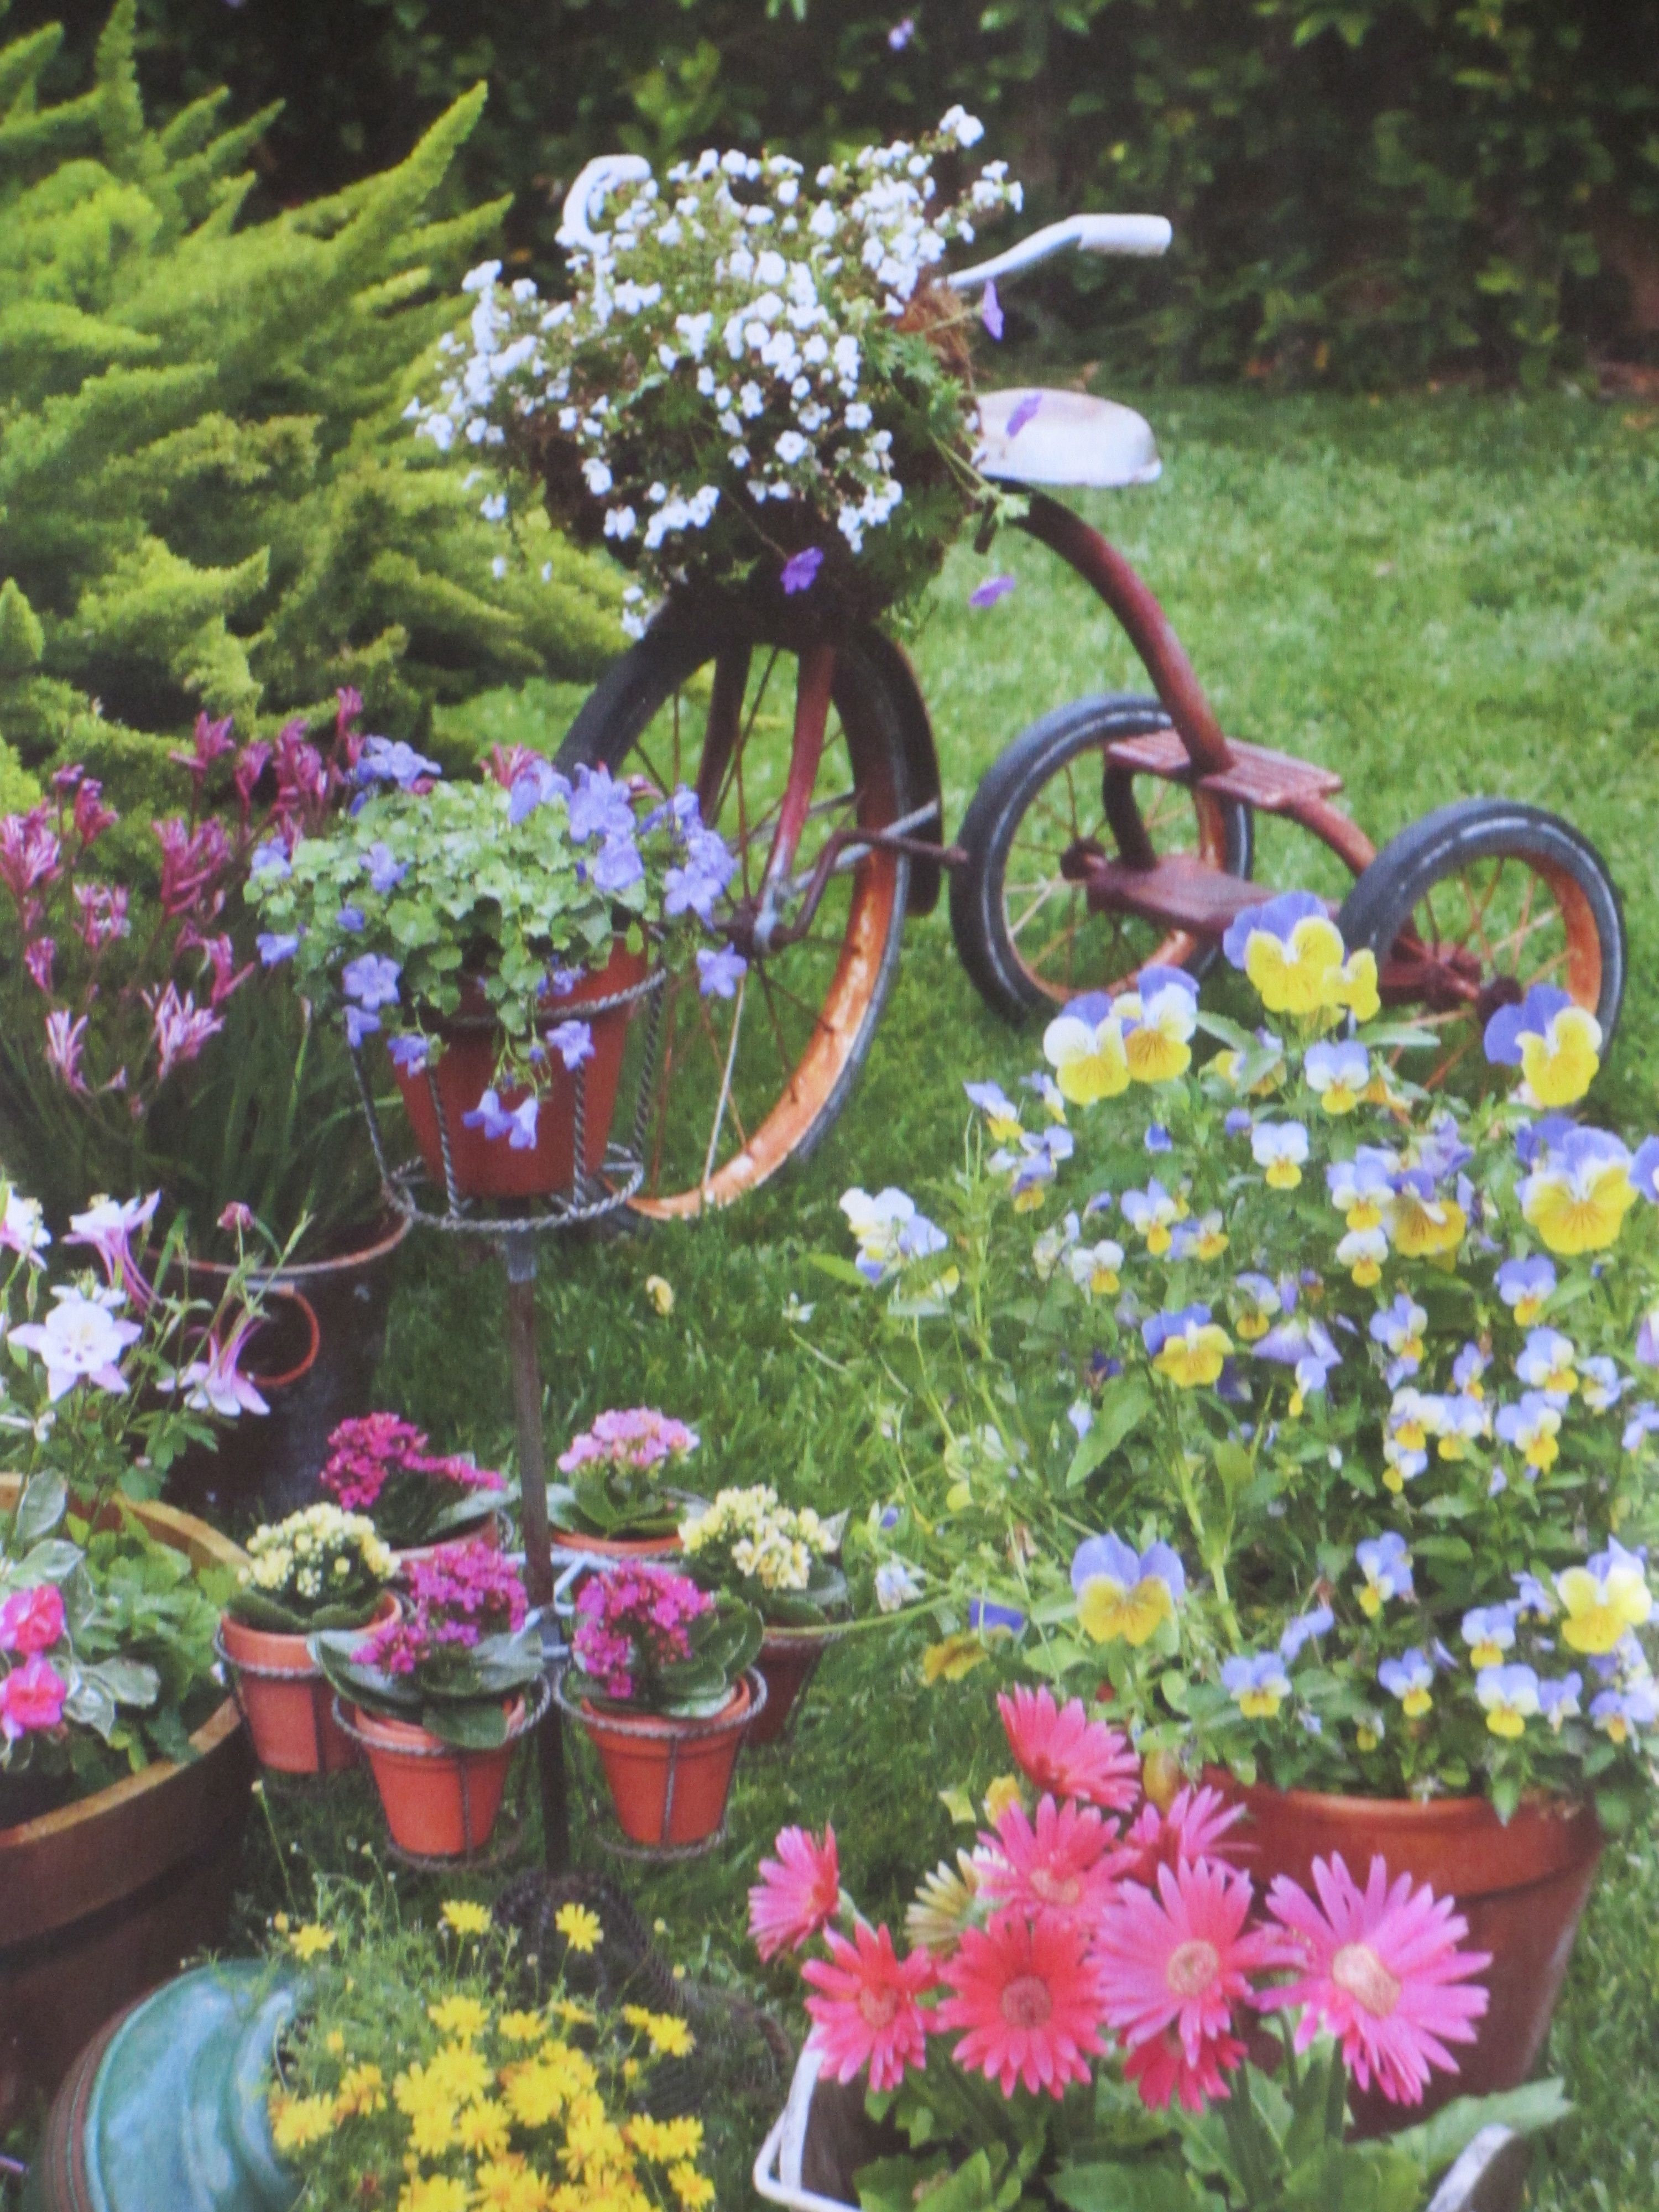 Cute garden idea the old tricycle search for the garden of eden cute garden idea the old tricycle workwithnaturefo